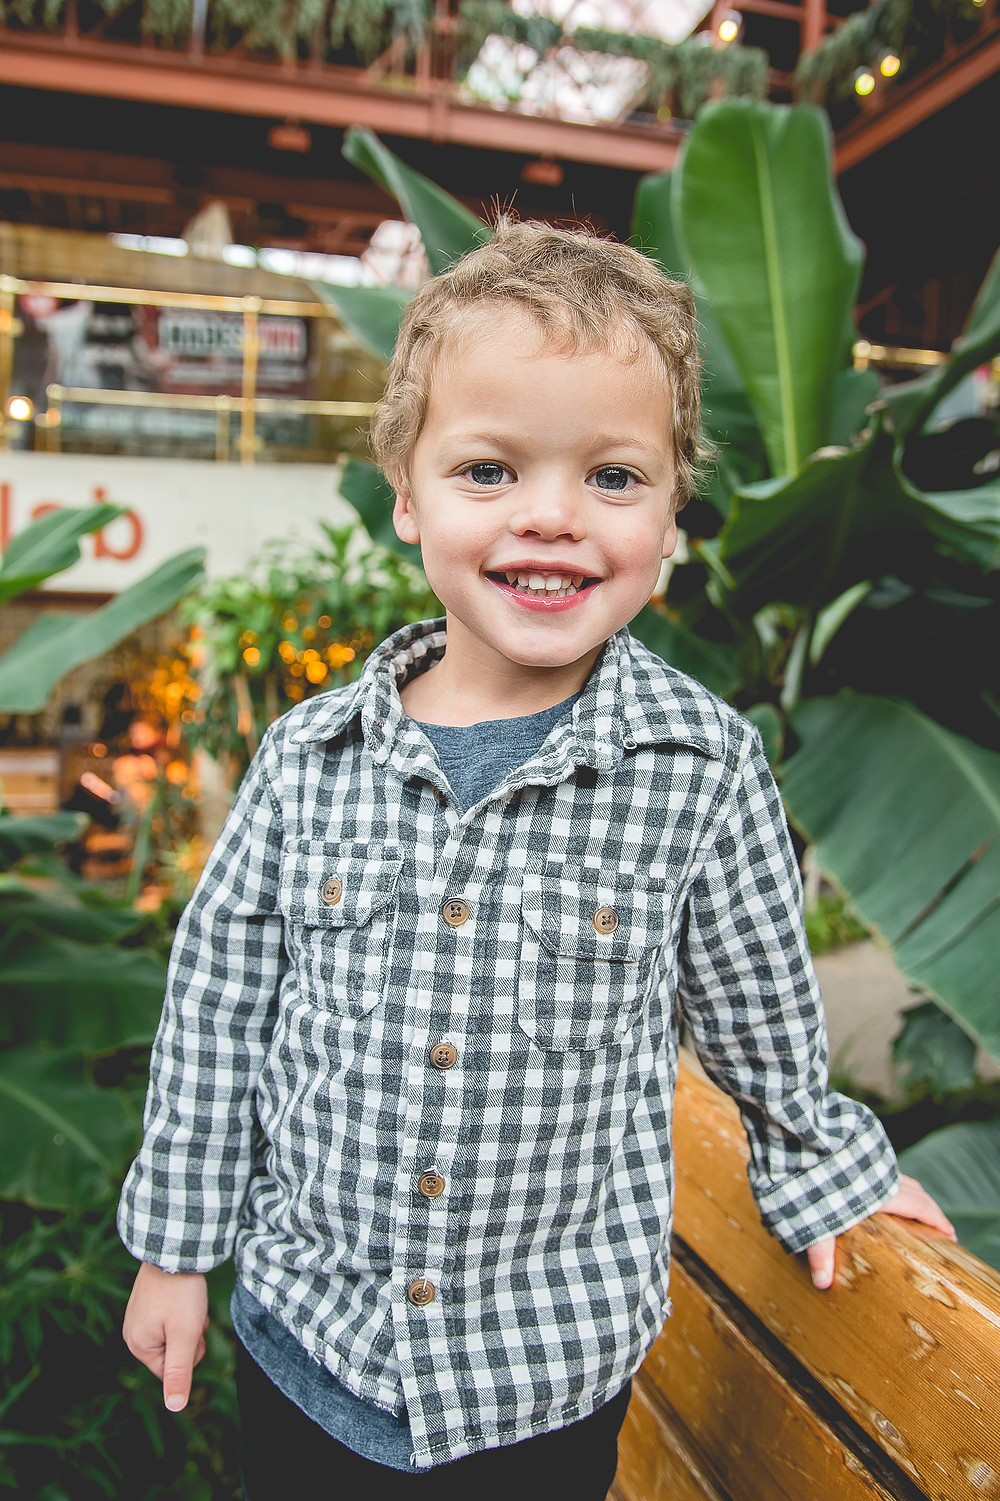 Young boy 3 years old in a blue and white plaid shirt standing on a bench inside an atrium, surrounded by large lush green plants with the biggest smile on his face.